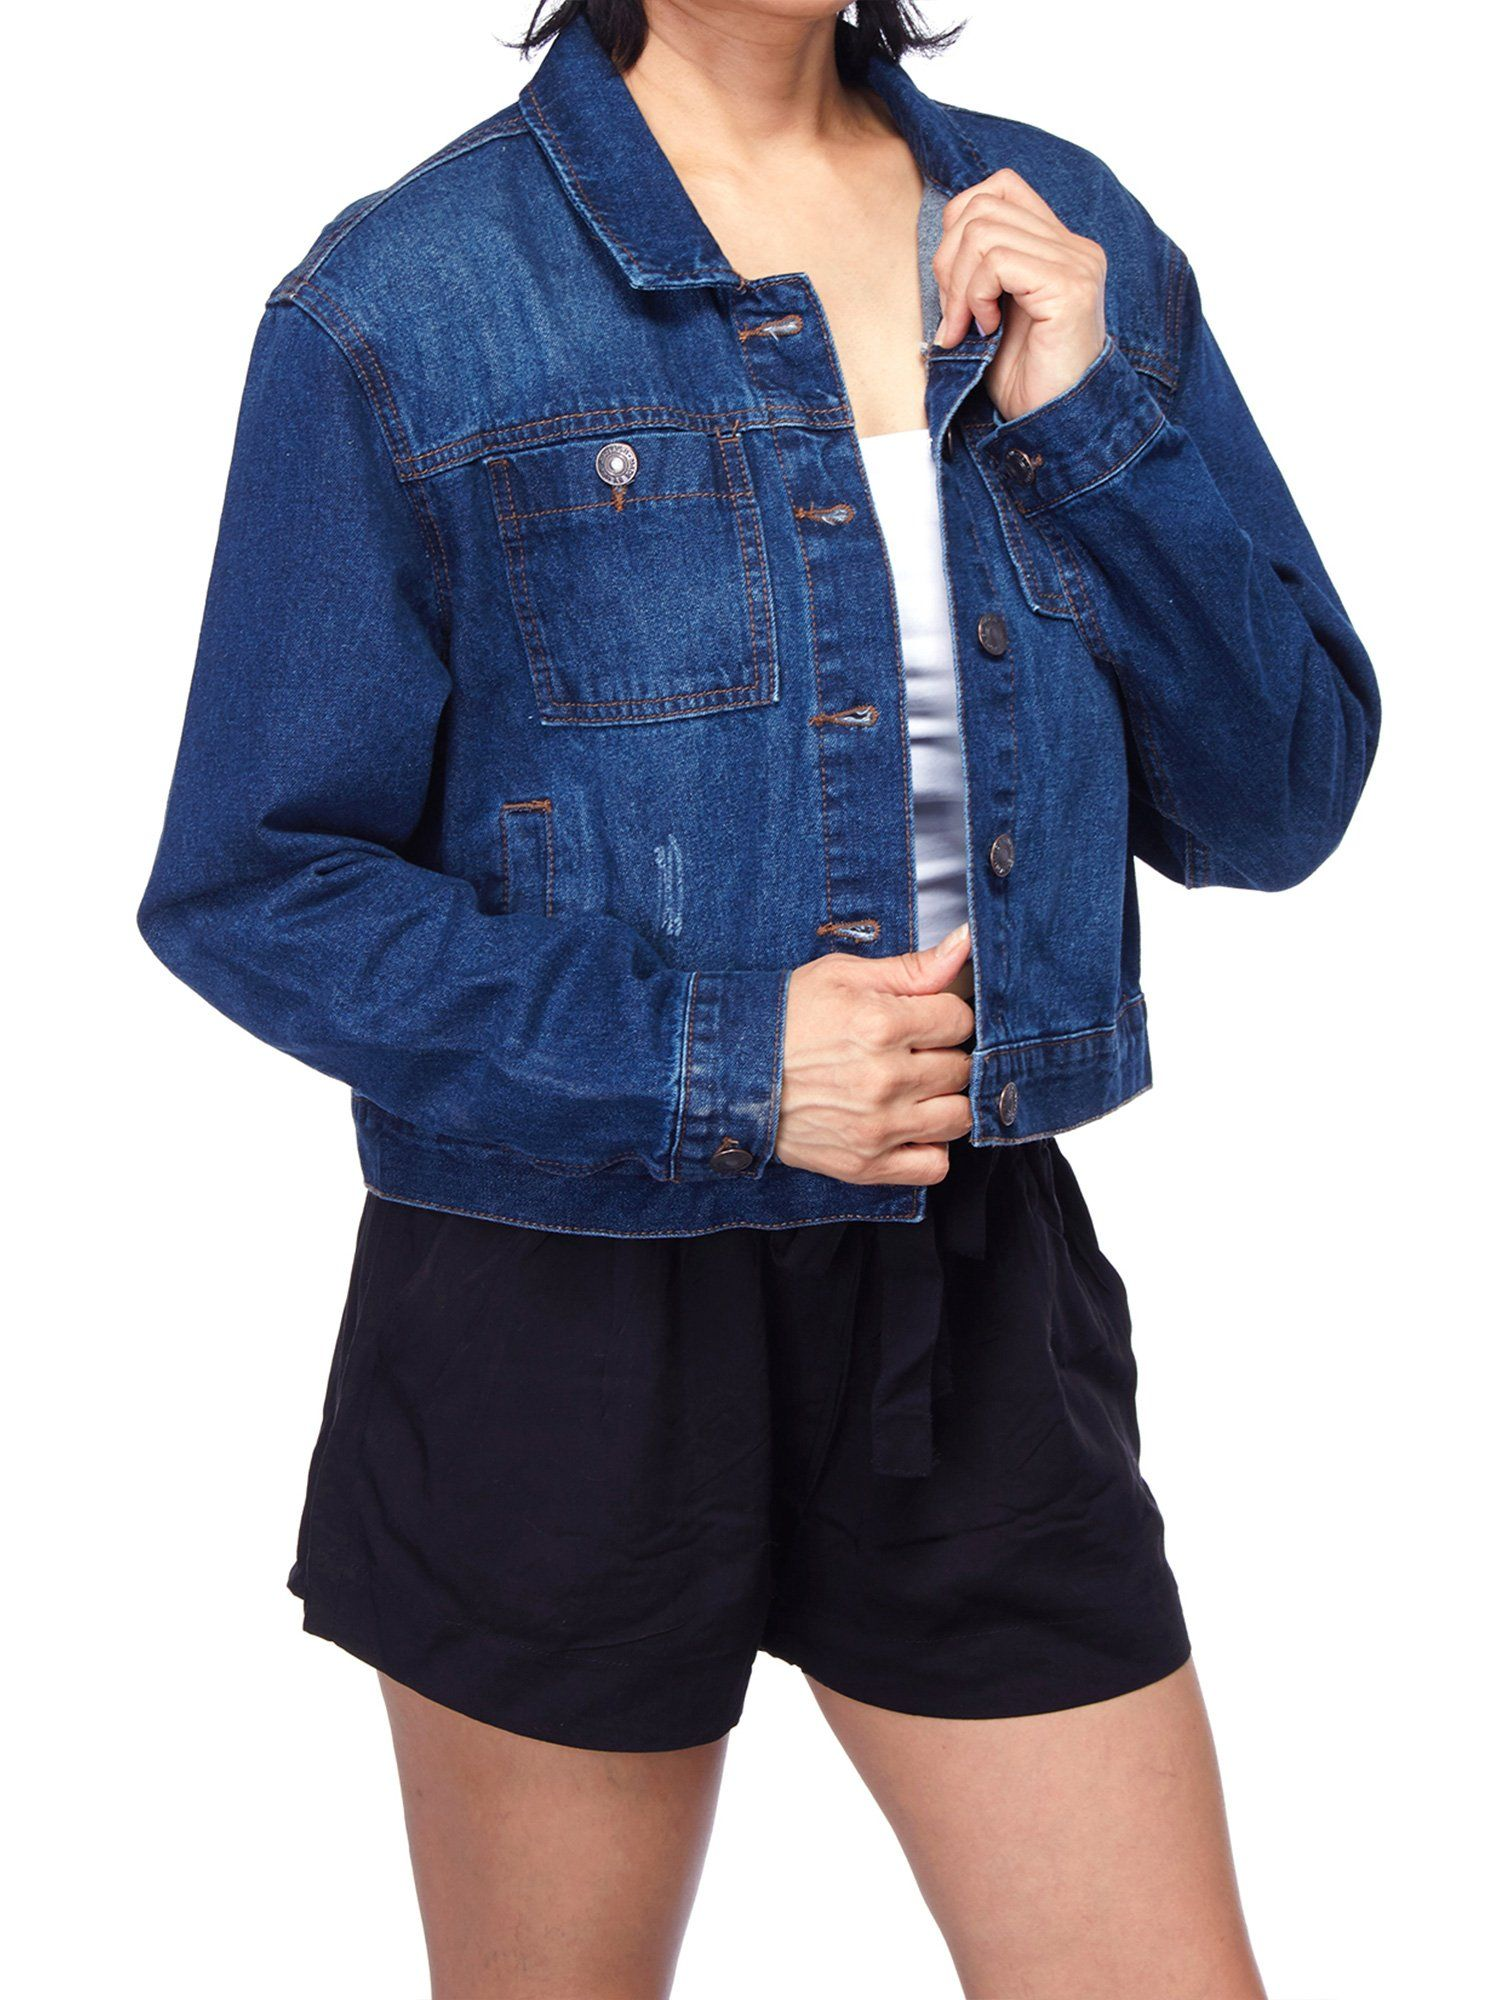 Women's Crop Oversize Trucker Boyfriend Long Sleeve Denim Jean Jacket (FWJ1068) - Dark Denim / M